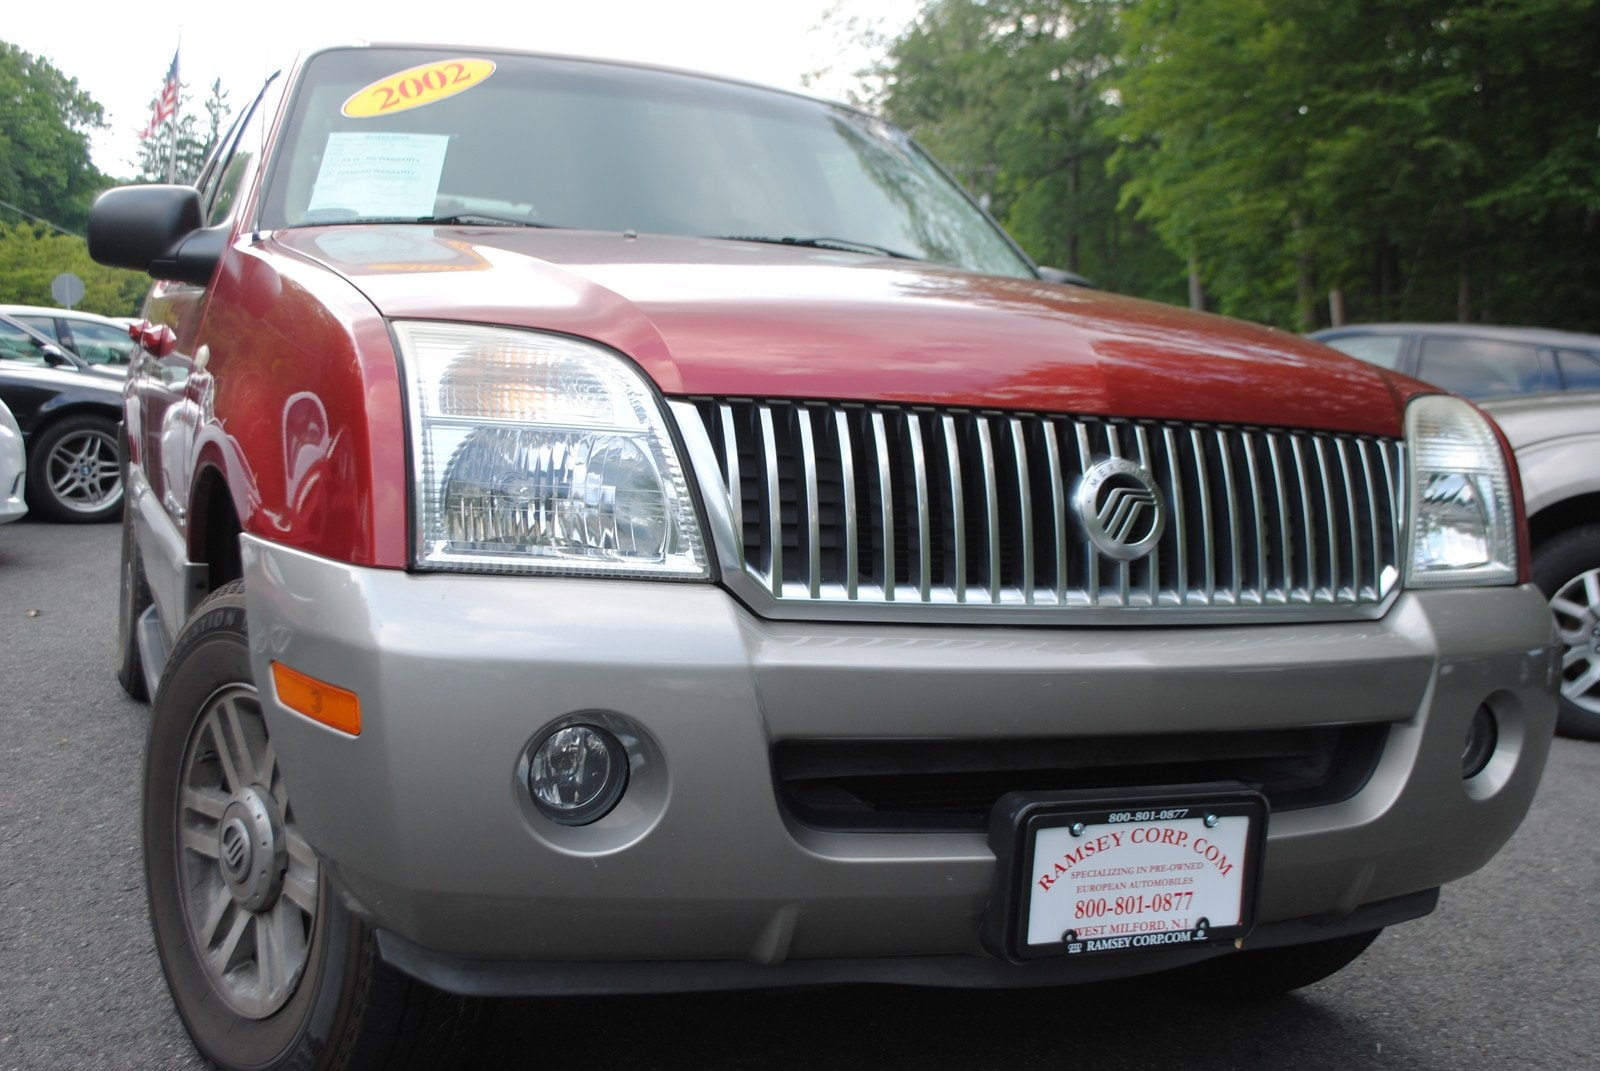 Used 2002 Mercury Mountaineer For Sale West Milford Nj